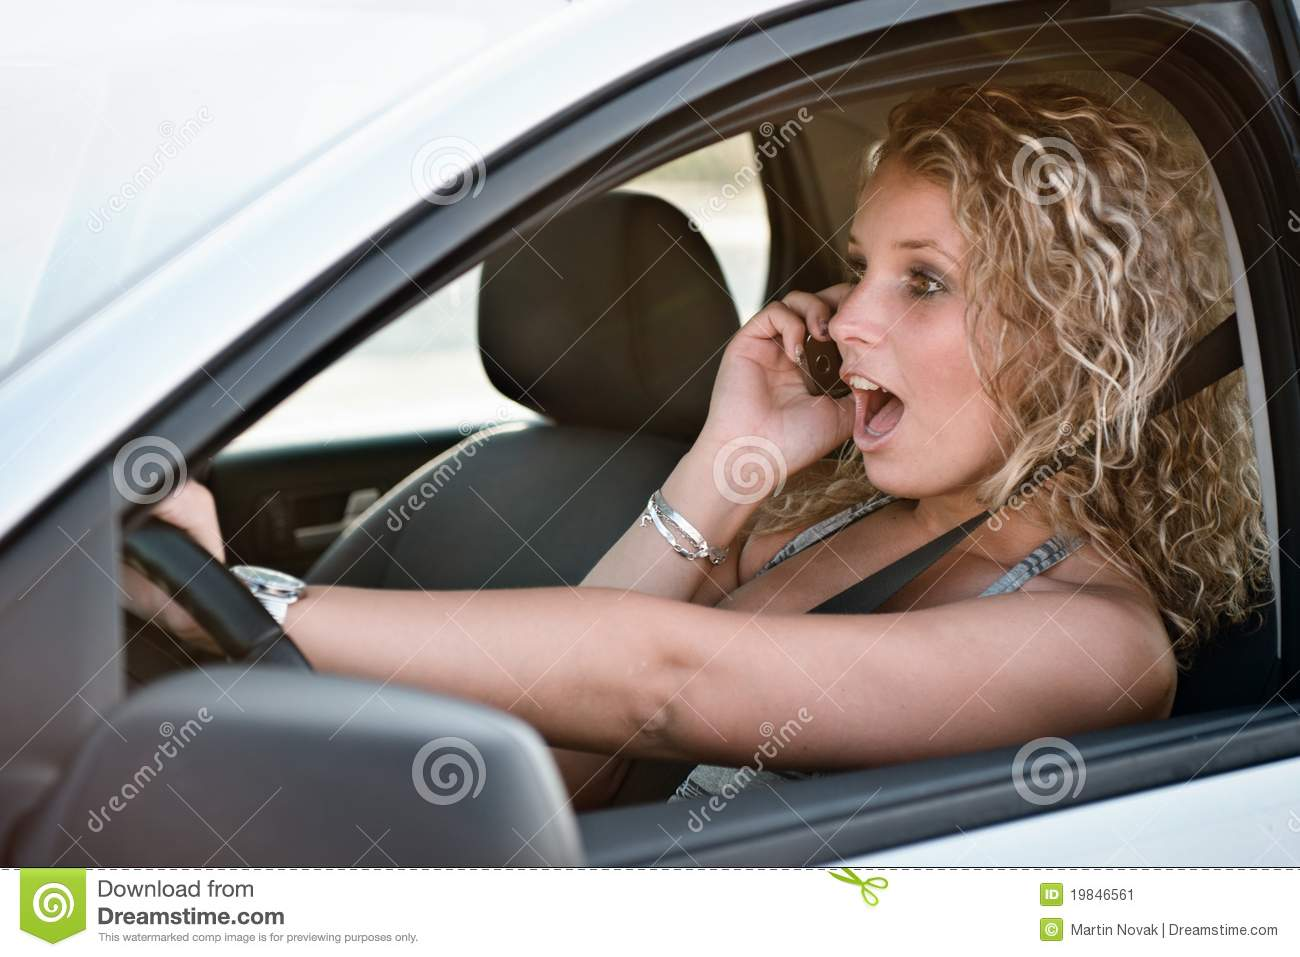 Calling Mobile Phone While Driving Car Stock Image - Image ...